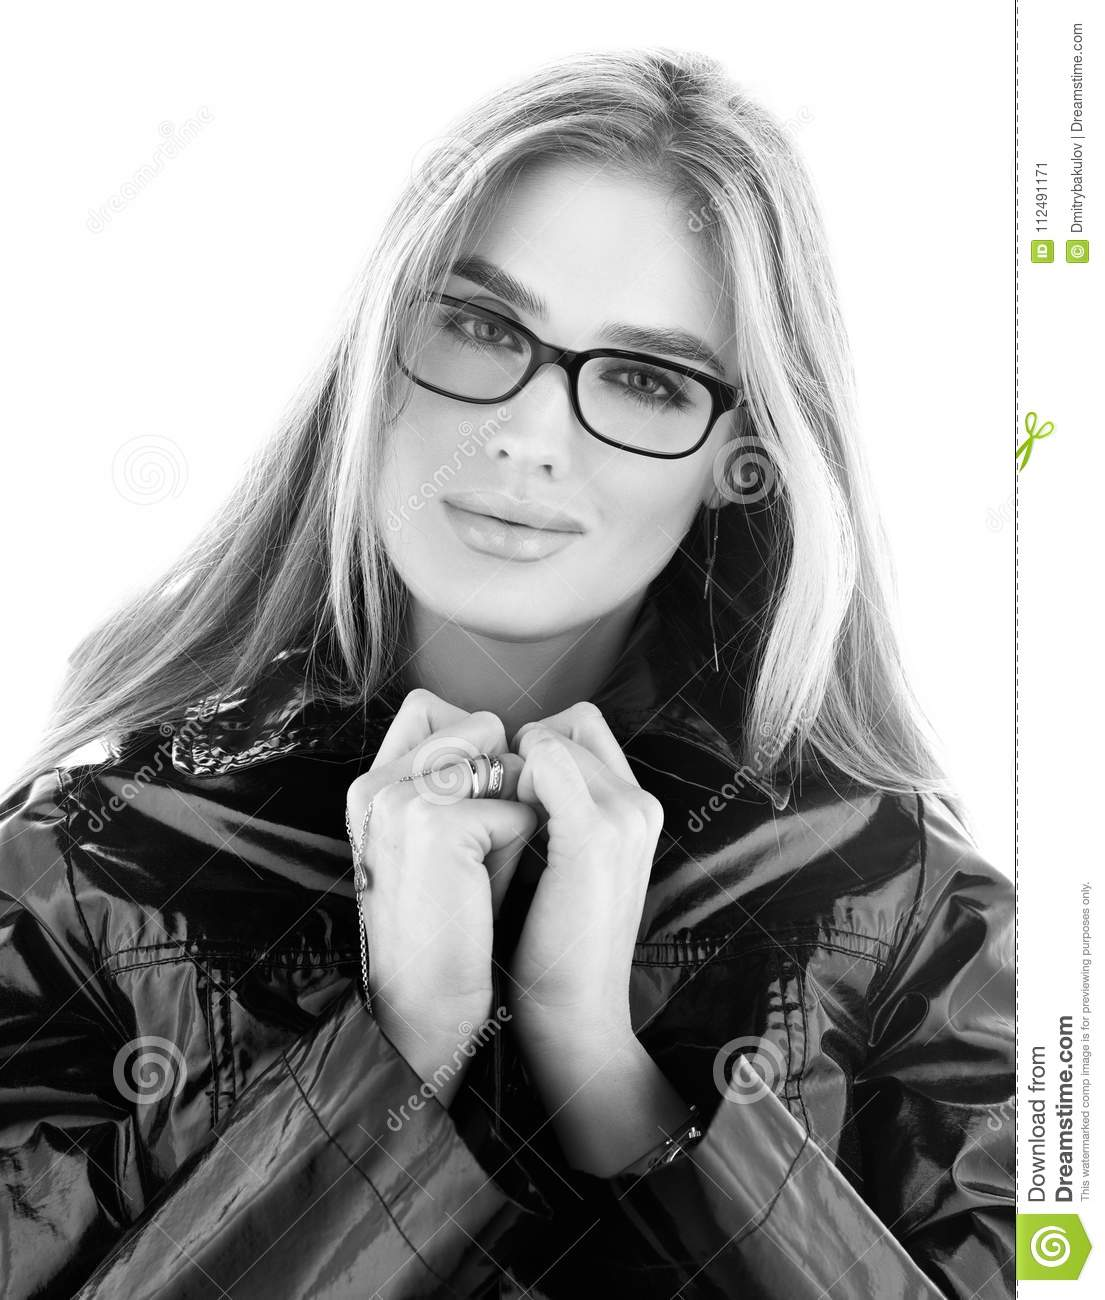 f04634320 Black and white portrait of stylish young woman in glasses. Hair down.  Bright white background